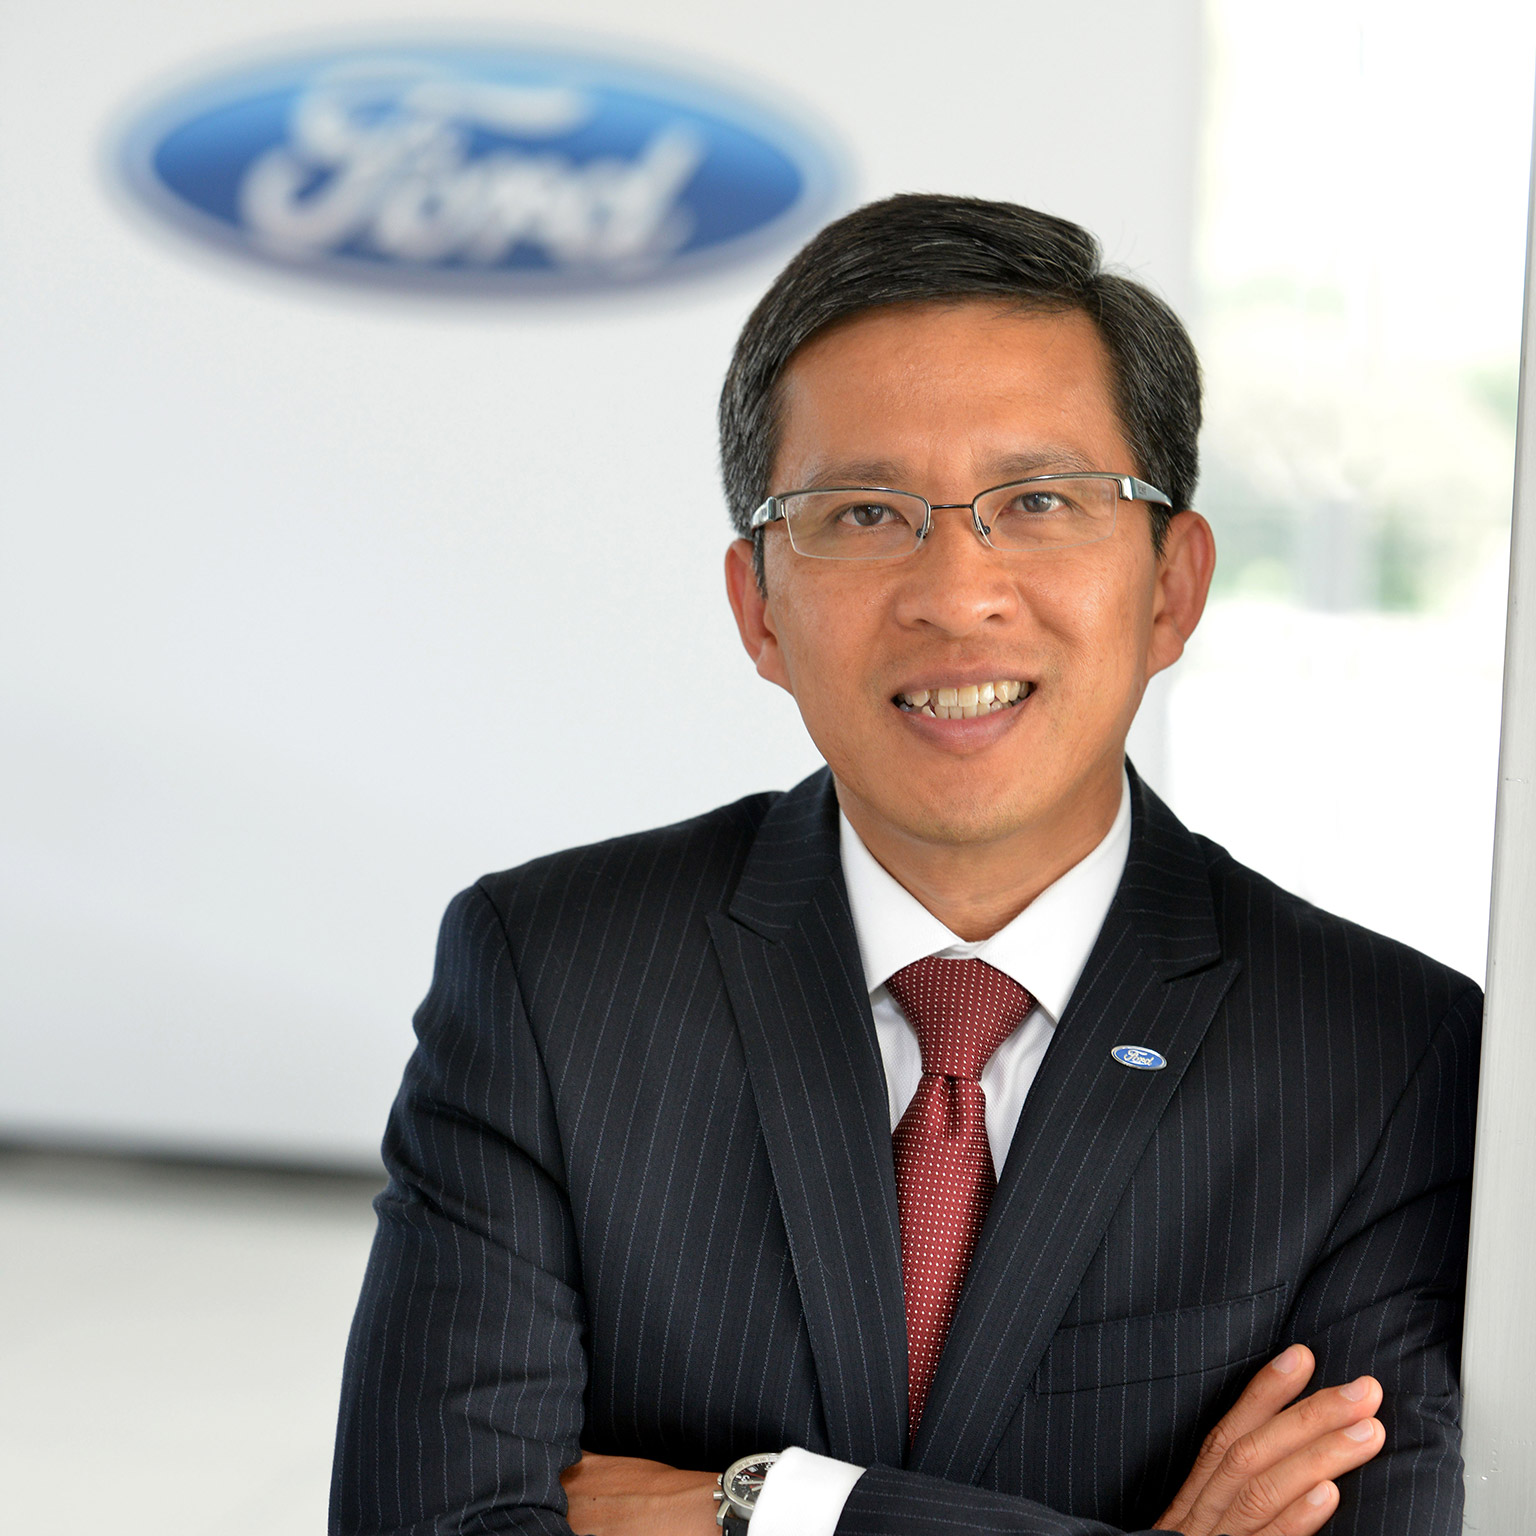 Ford's evolving sense of self: An interview with Hau Thai-Tang